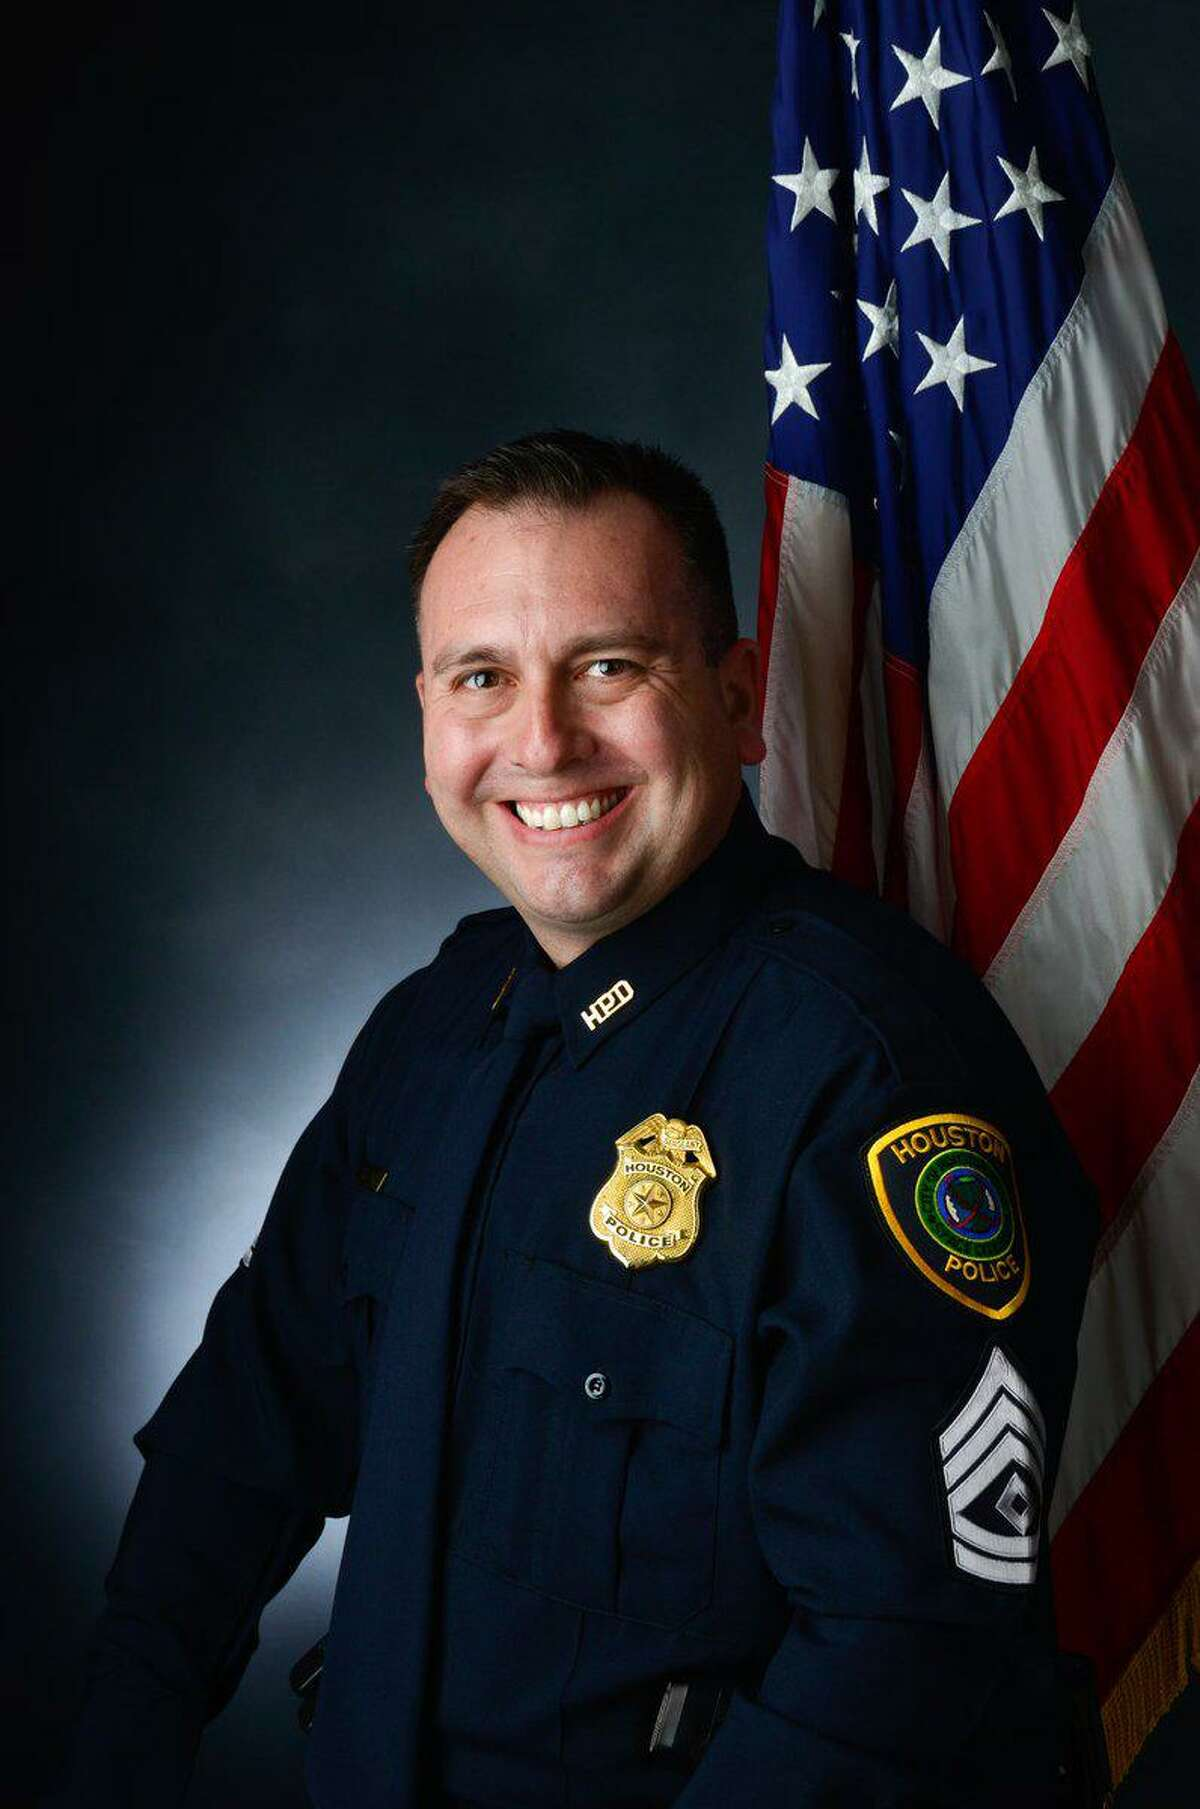 """Slain Houston police Sgt. Sean Rios grew up in Pasadena and graduated from Pasadena High School. A childhood friend remembers him as """"a really good guy"""" who cared about the community even as a kid."""